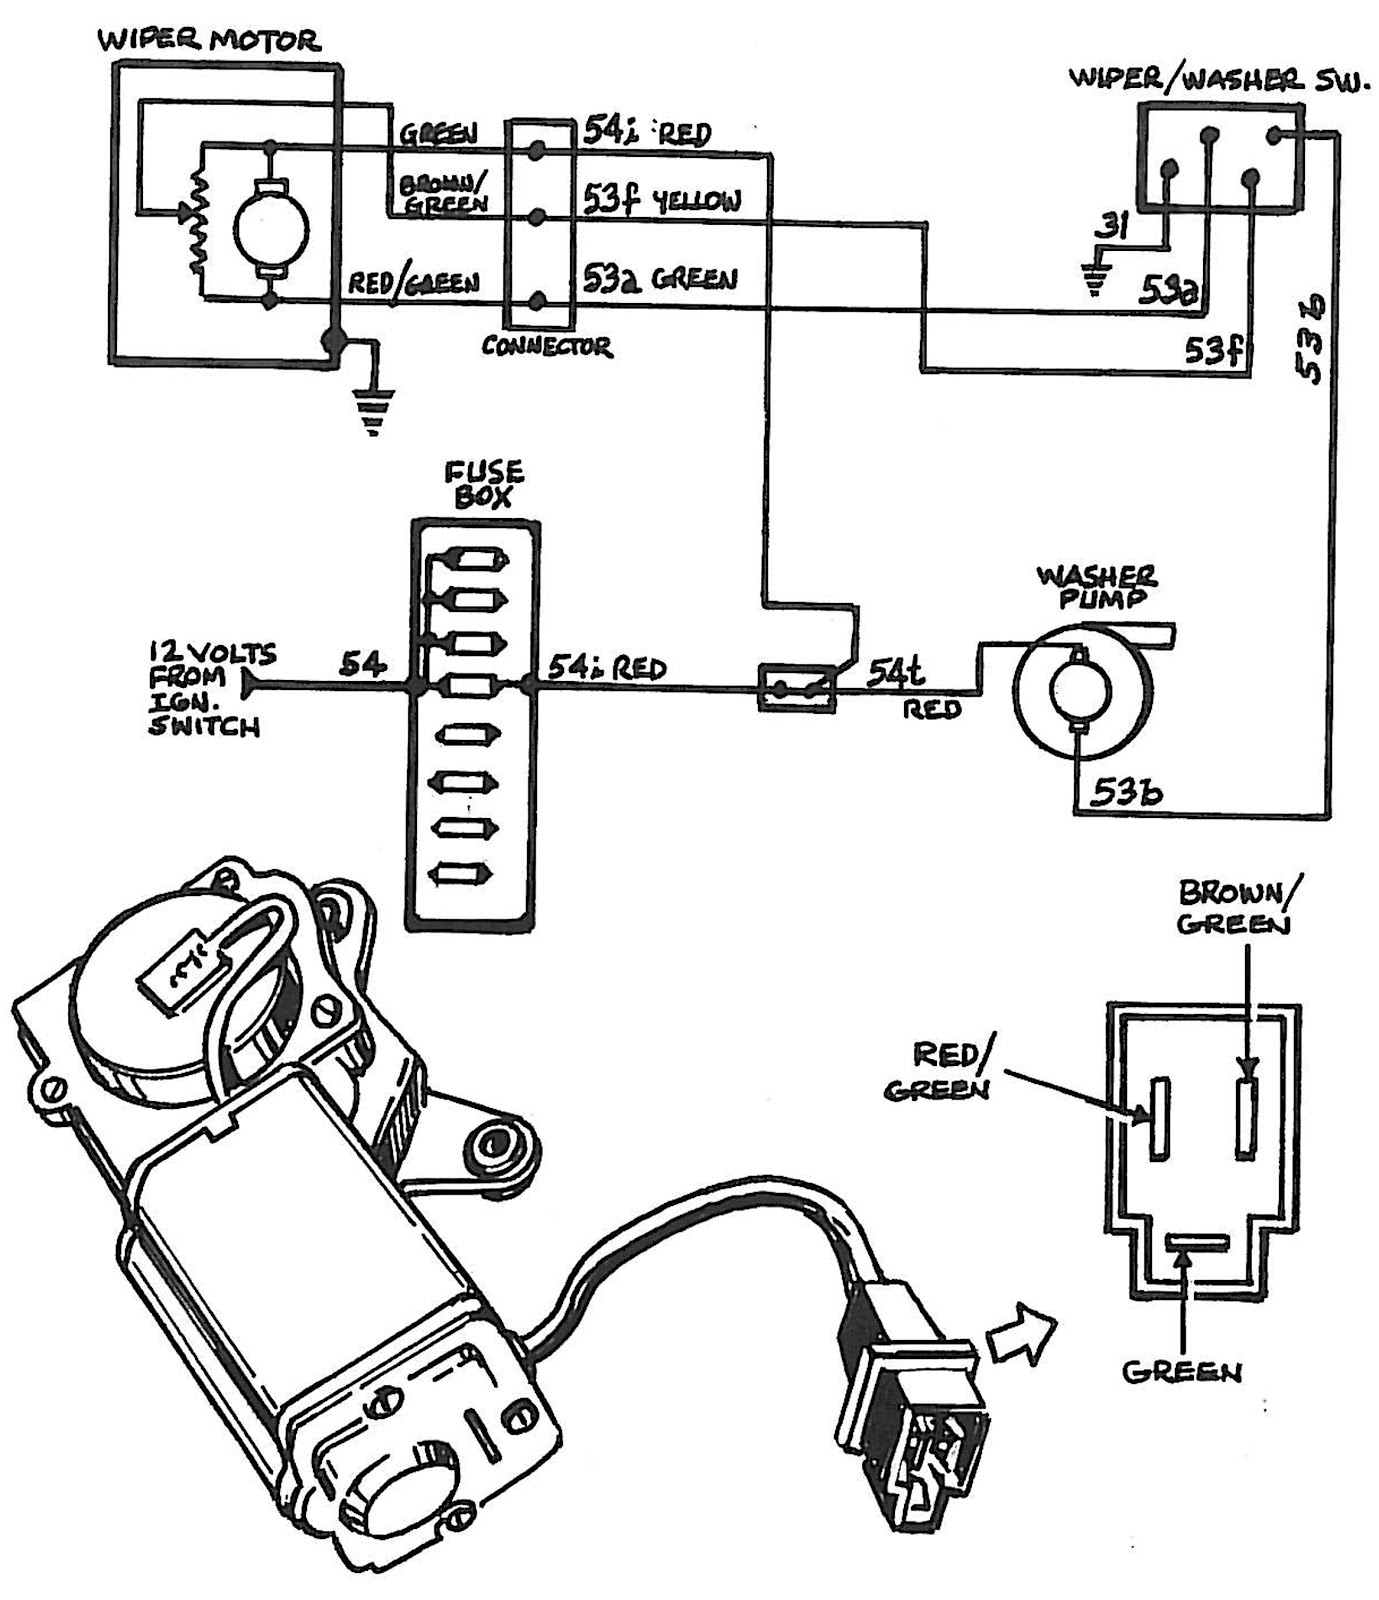 1999 saab 9 3 electrical diagram with Chevrolet Wiper Wiring Diagram on Mazda Mpv 1994 Mazda Mpv Engine Rotates But Will Not Start also 2008 Mazda 3 Car Stereo Wiring Diagram moreover Crank Sensor Location 68932 in addition P 0900c15280268e0f furthermore Ww 2 Sub Found Wiring Diagrams.